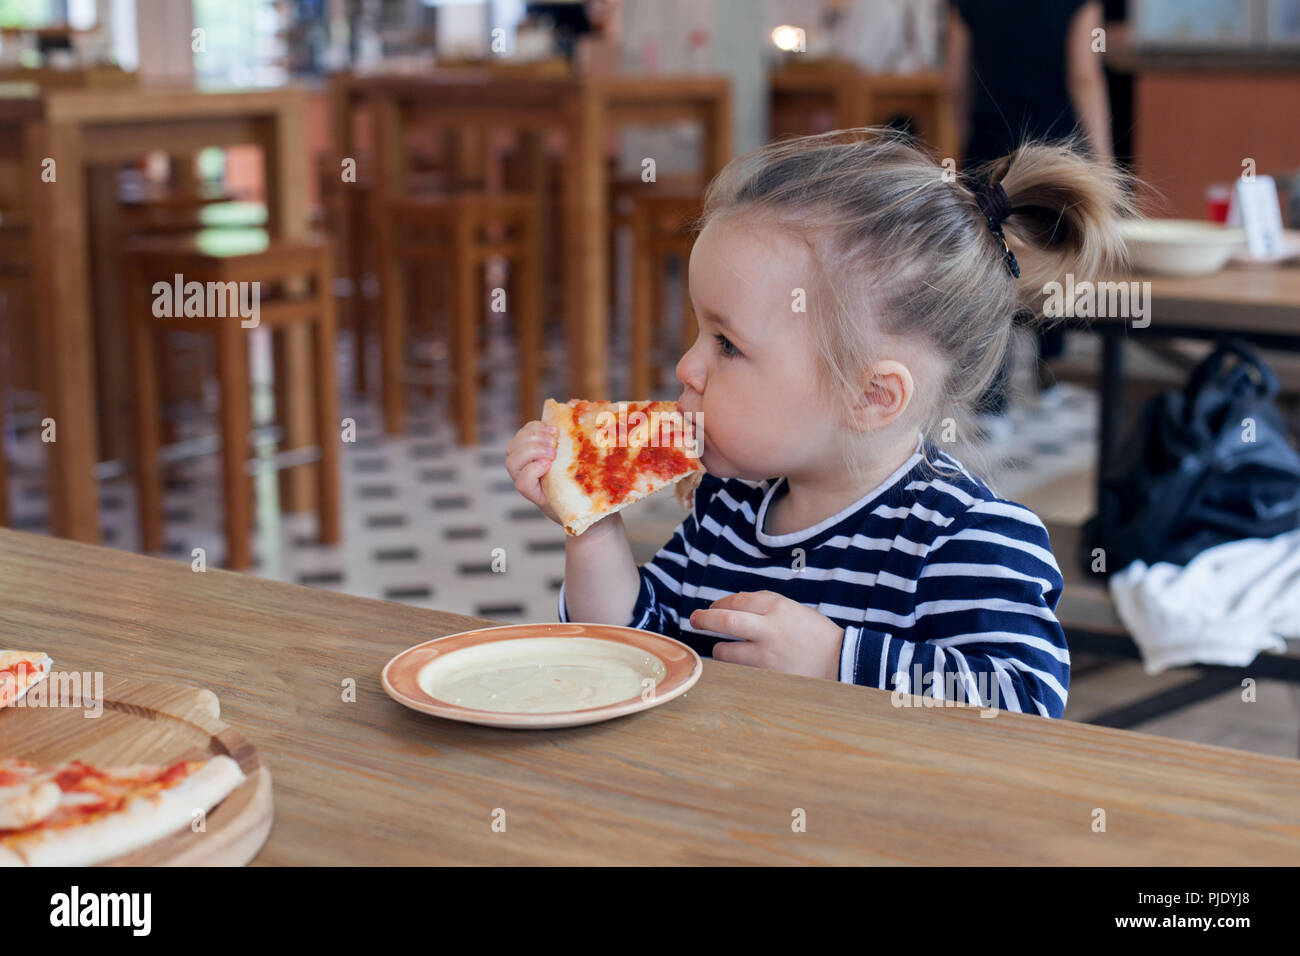 Adorable petit 2 ans girl eating pizza dans le restaurant Photo Stock